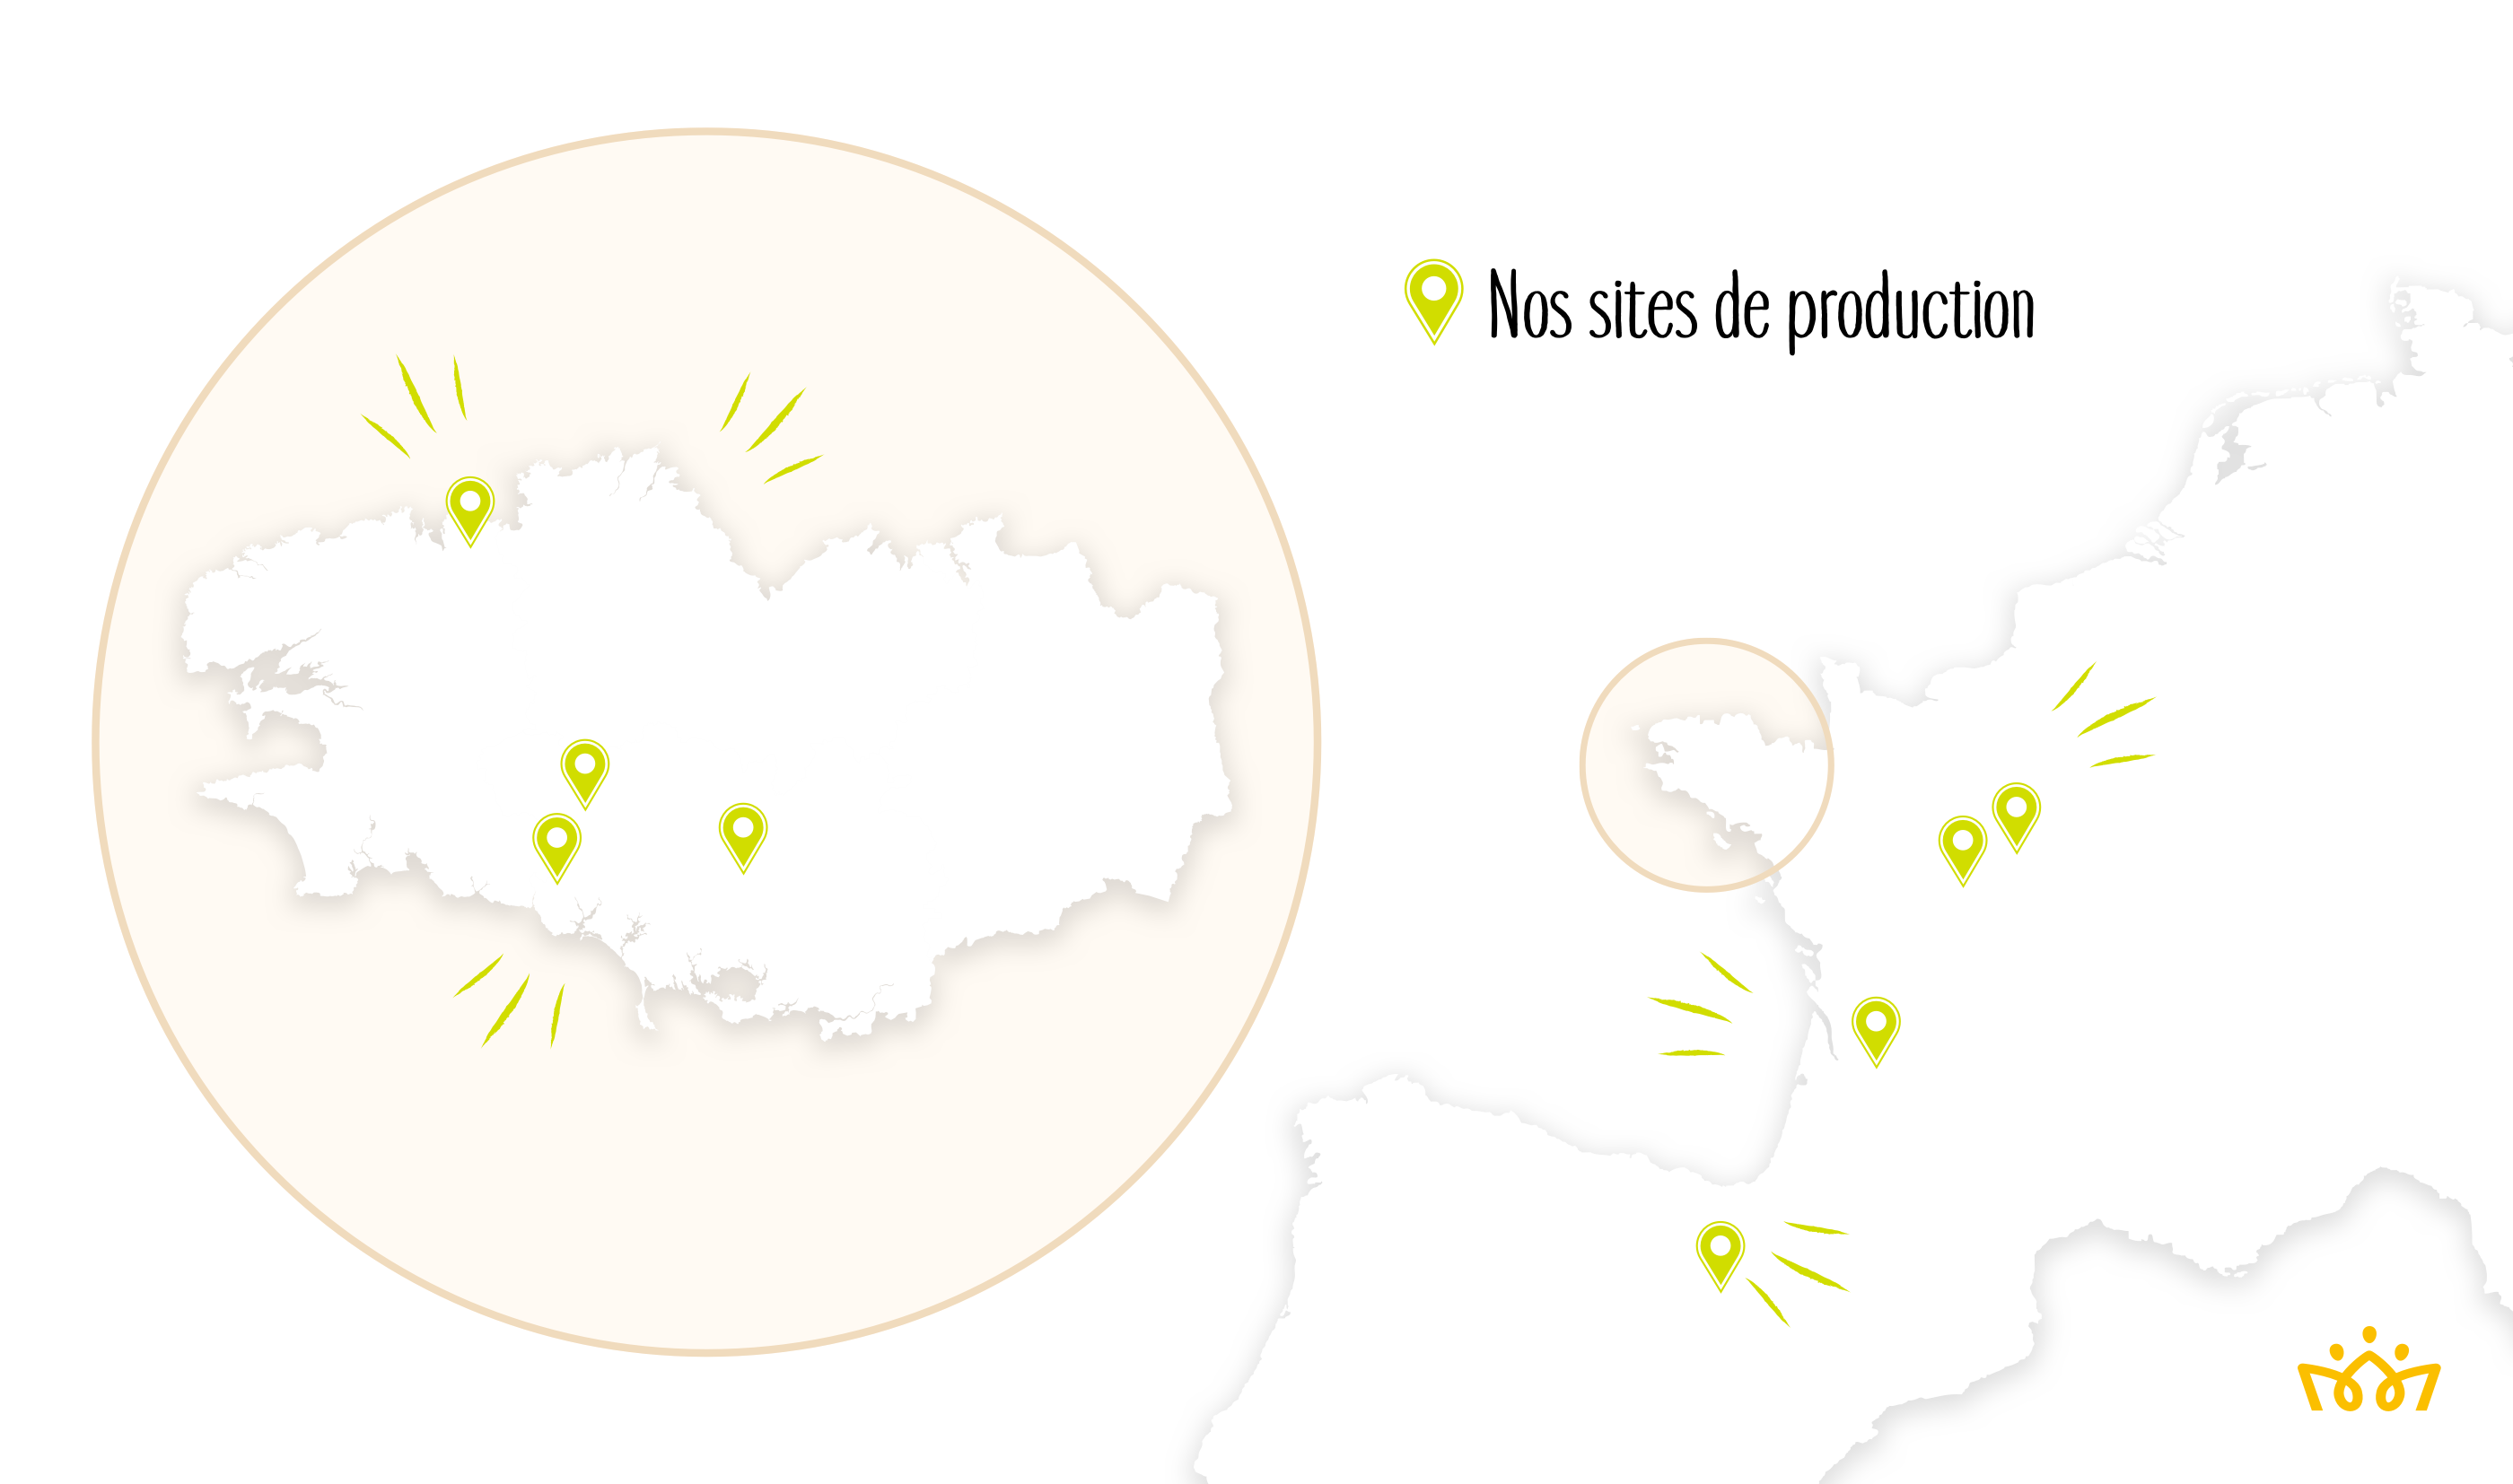 Nos sites de production